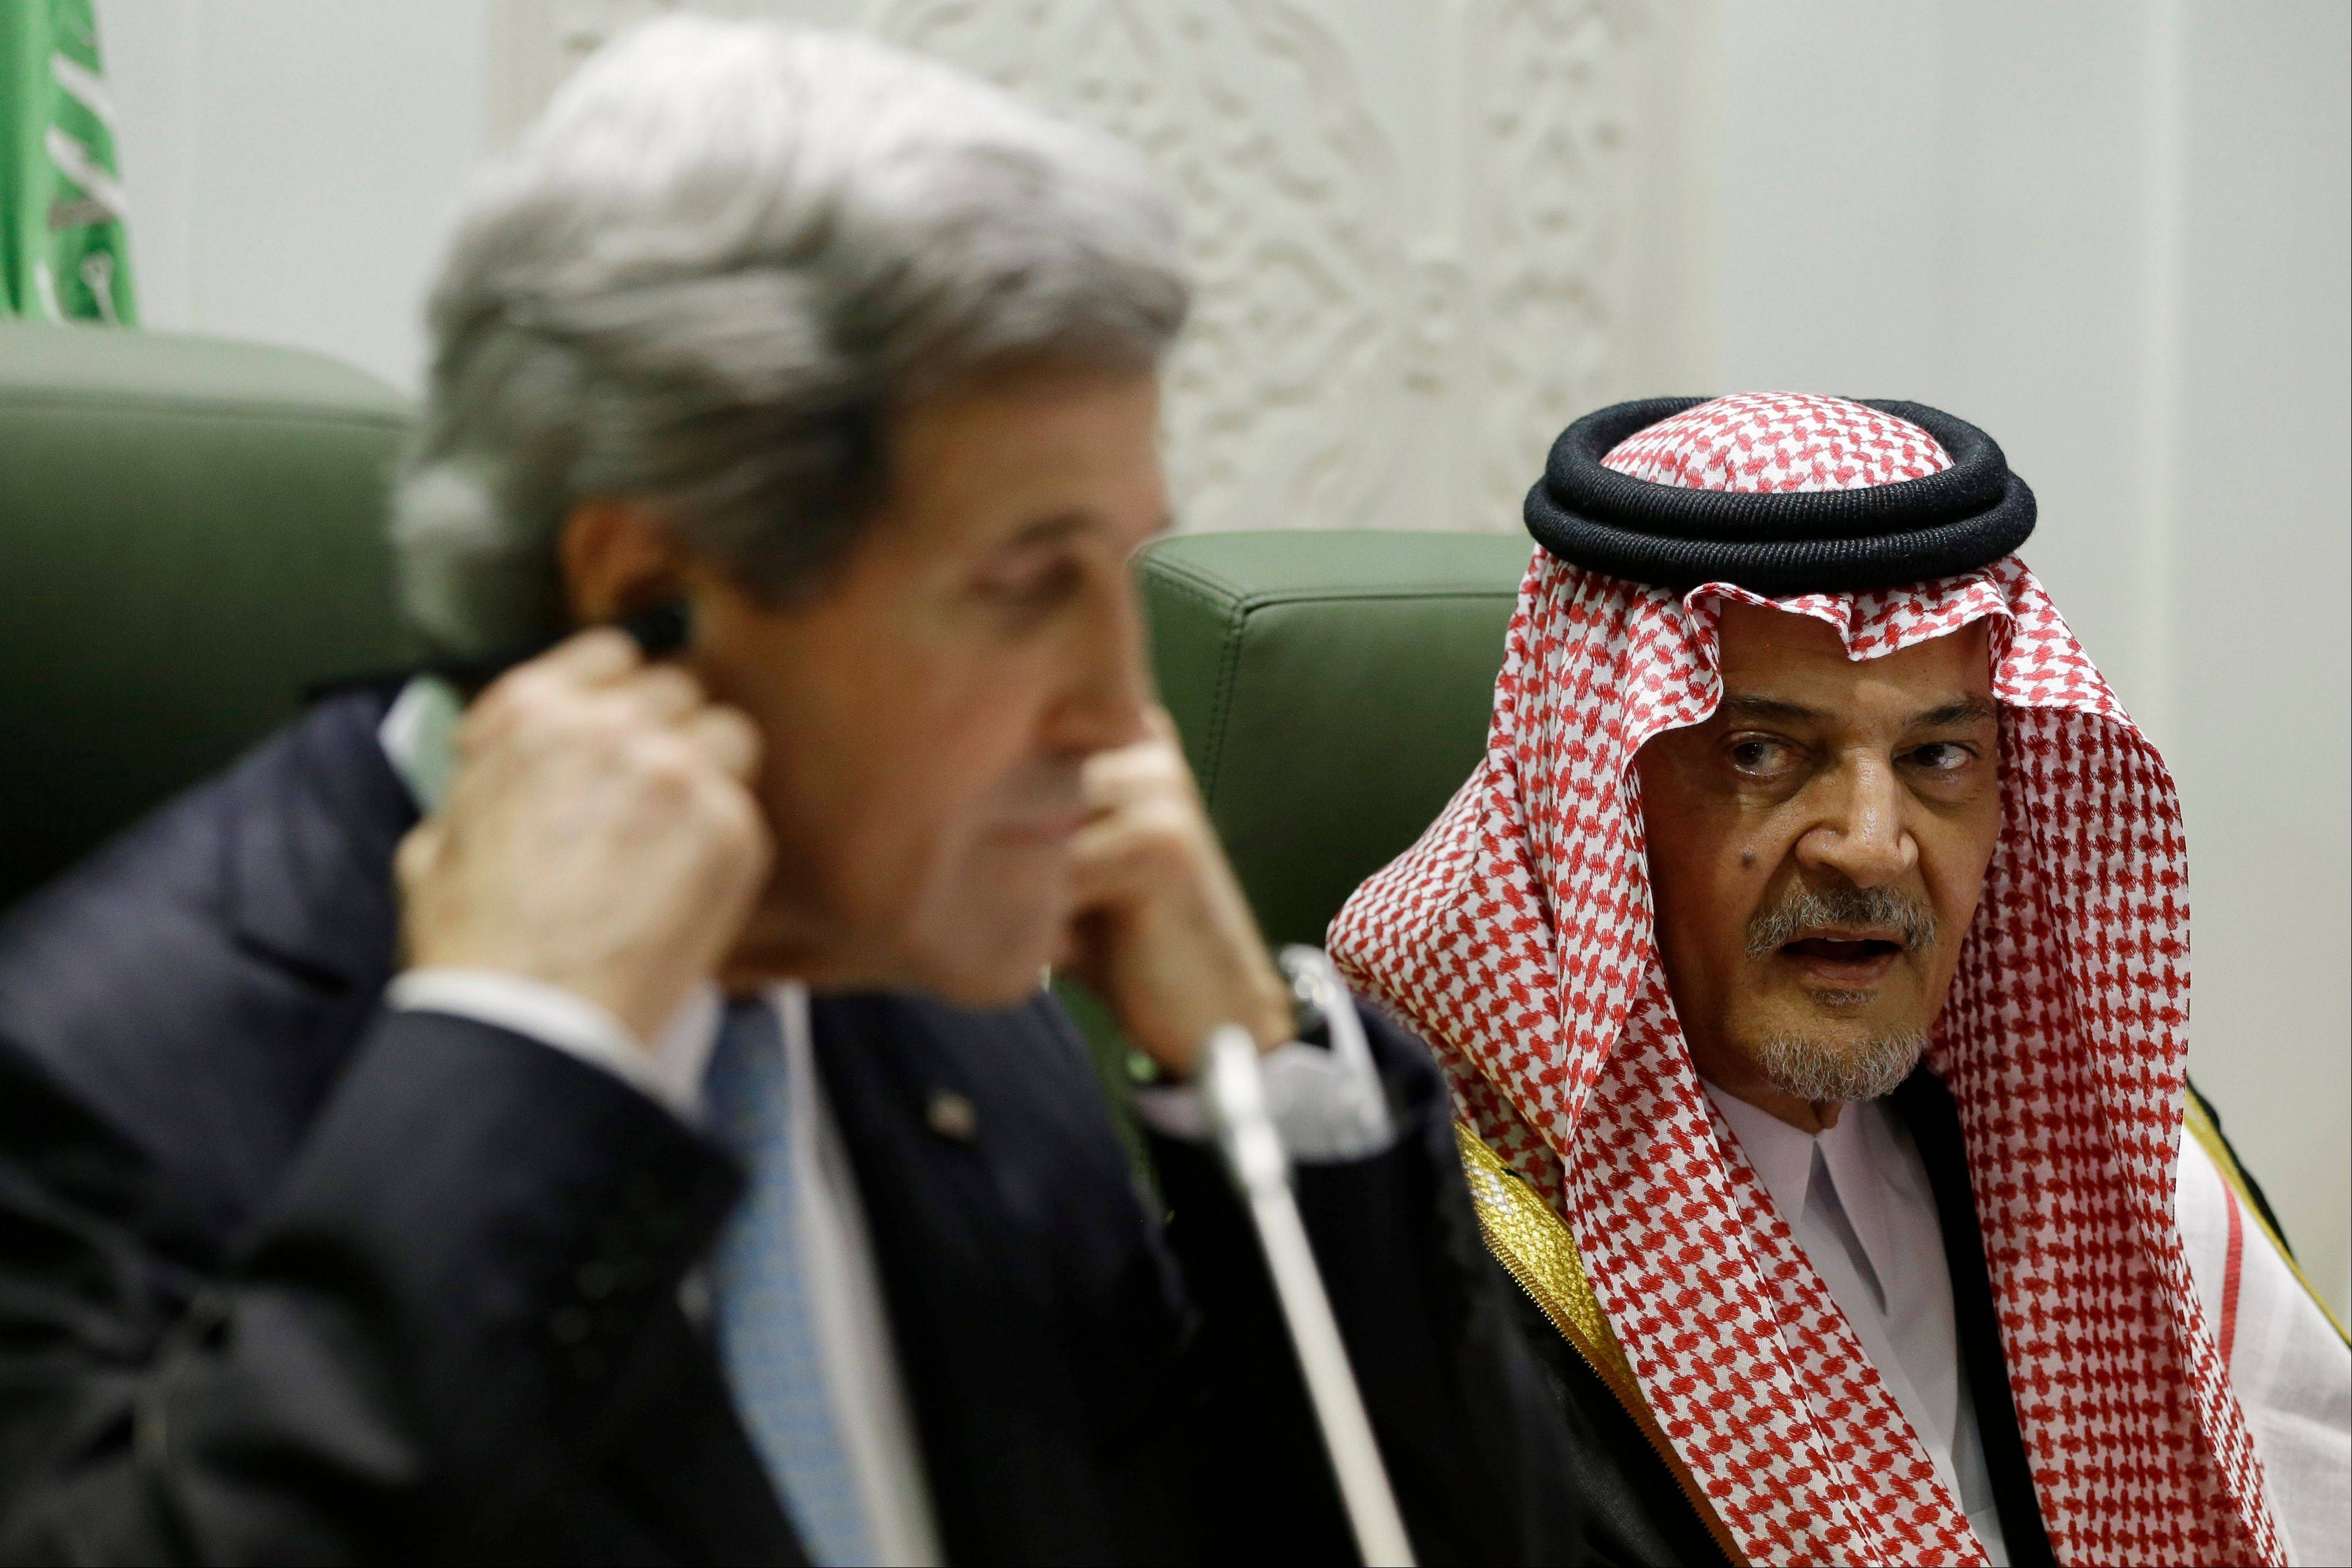 U.S. secretary of state John Kerry adjusts his translation headset as Saudi Foreign Minister Prince Saud al-Faisal speaks Monday during a news conference in Riyadh, Saudi Arabia. From Saudi Arabia, Kerry heads into the homestretch of his lengthy first official trip abroad, traveling next to the United Arab Emirates and then Qatar before returning to Washington on Wednesday.